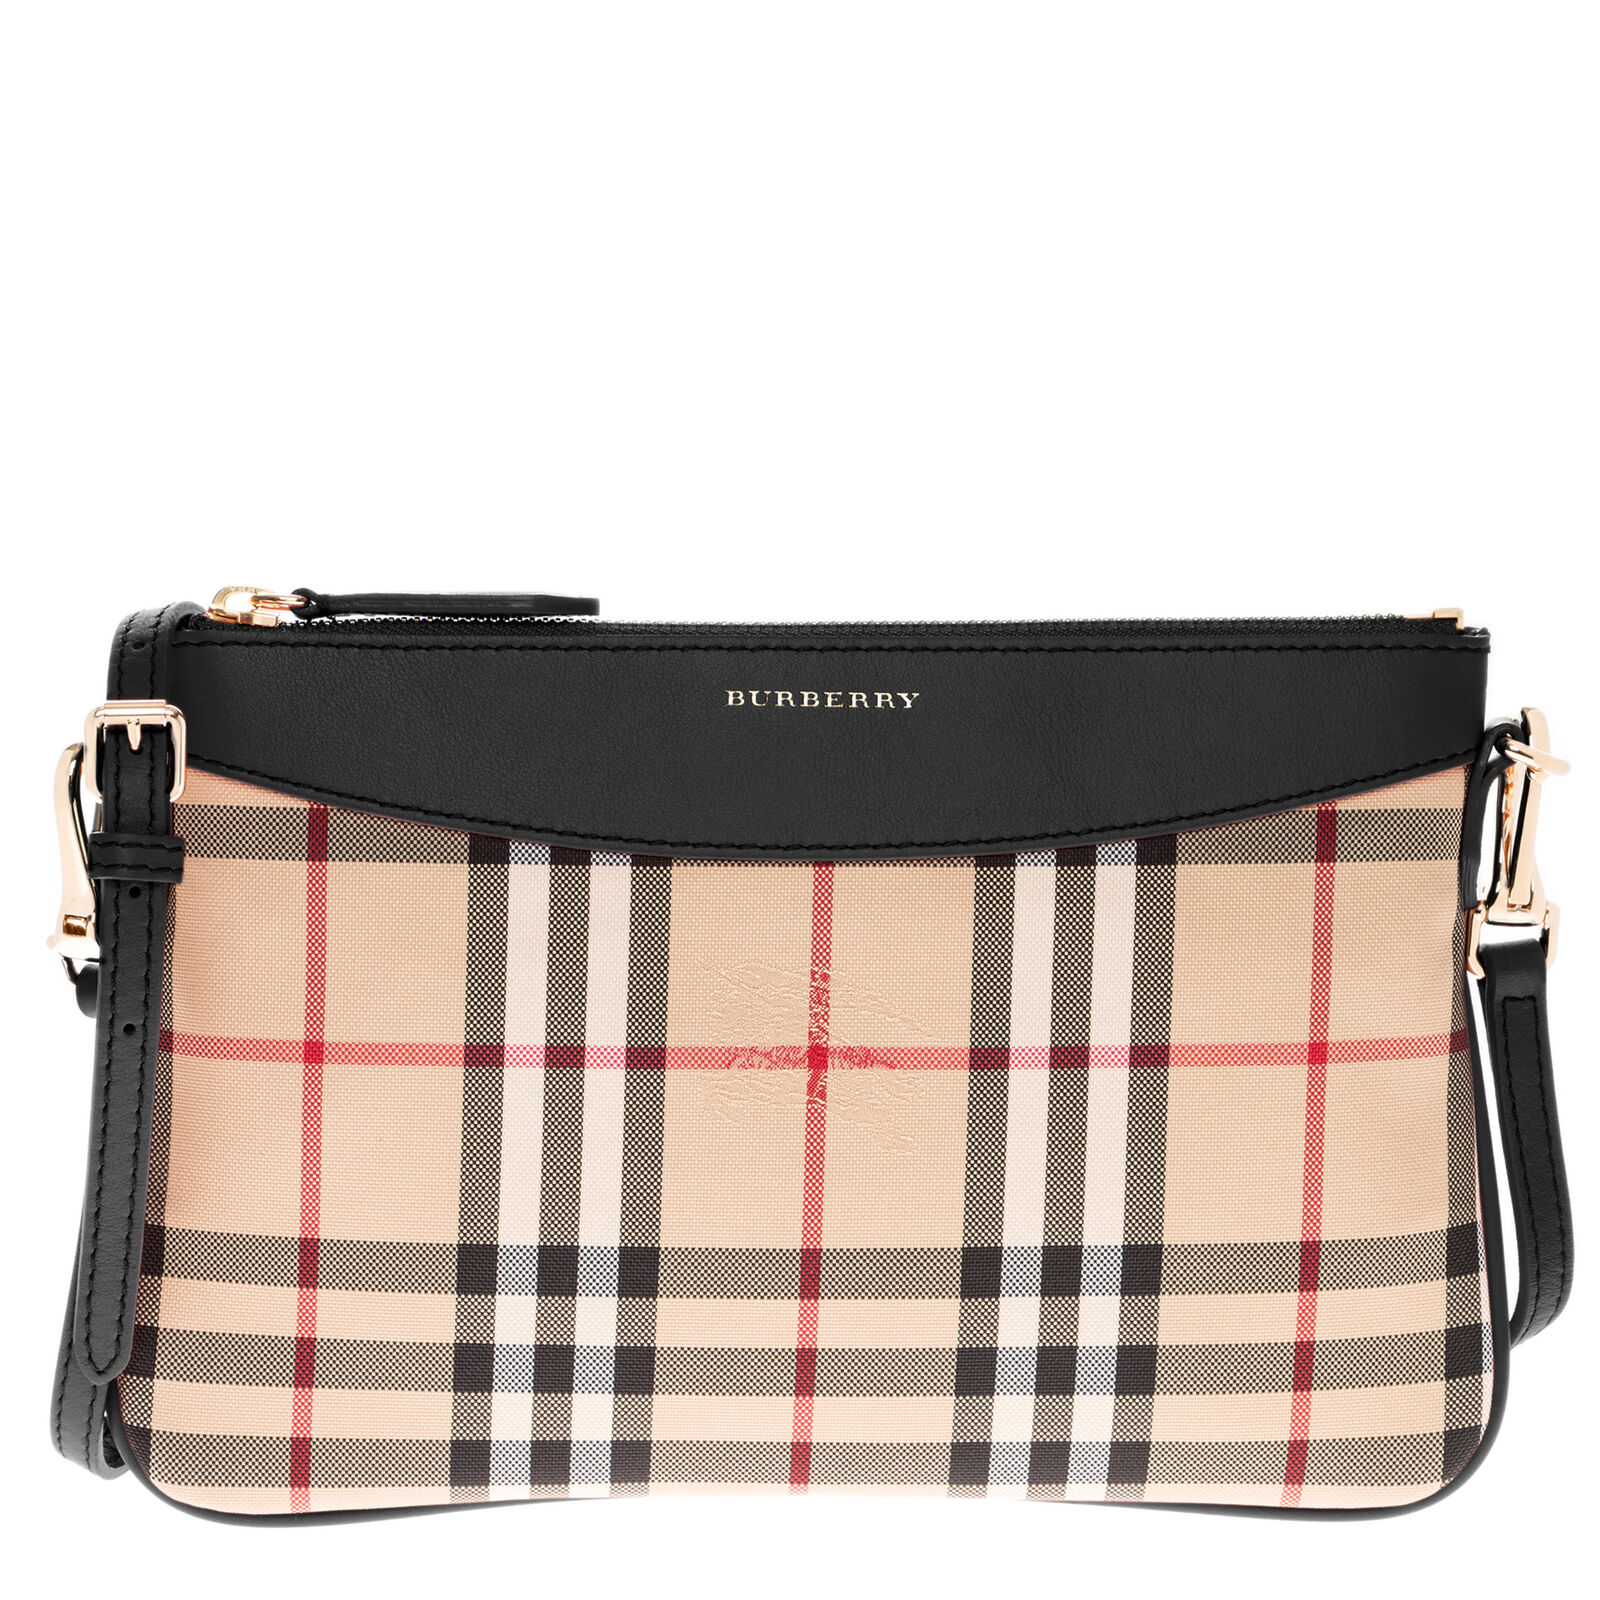 Details about Burberry Women s Horseferry Check Peyton Clutch Bag Beige +  Black 0d48cb2c91529